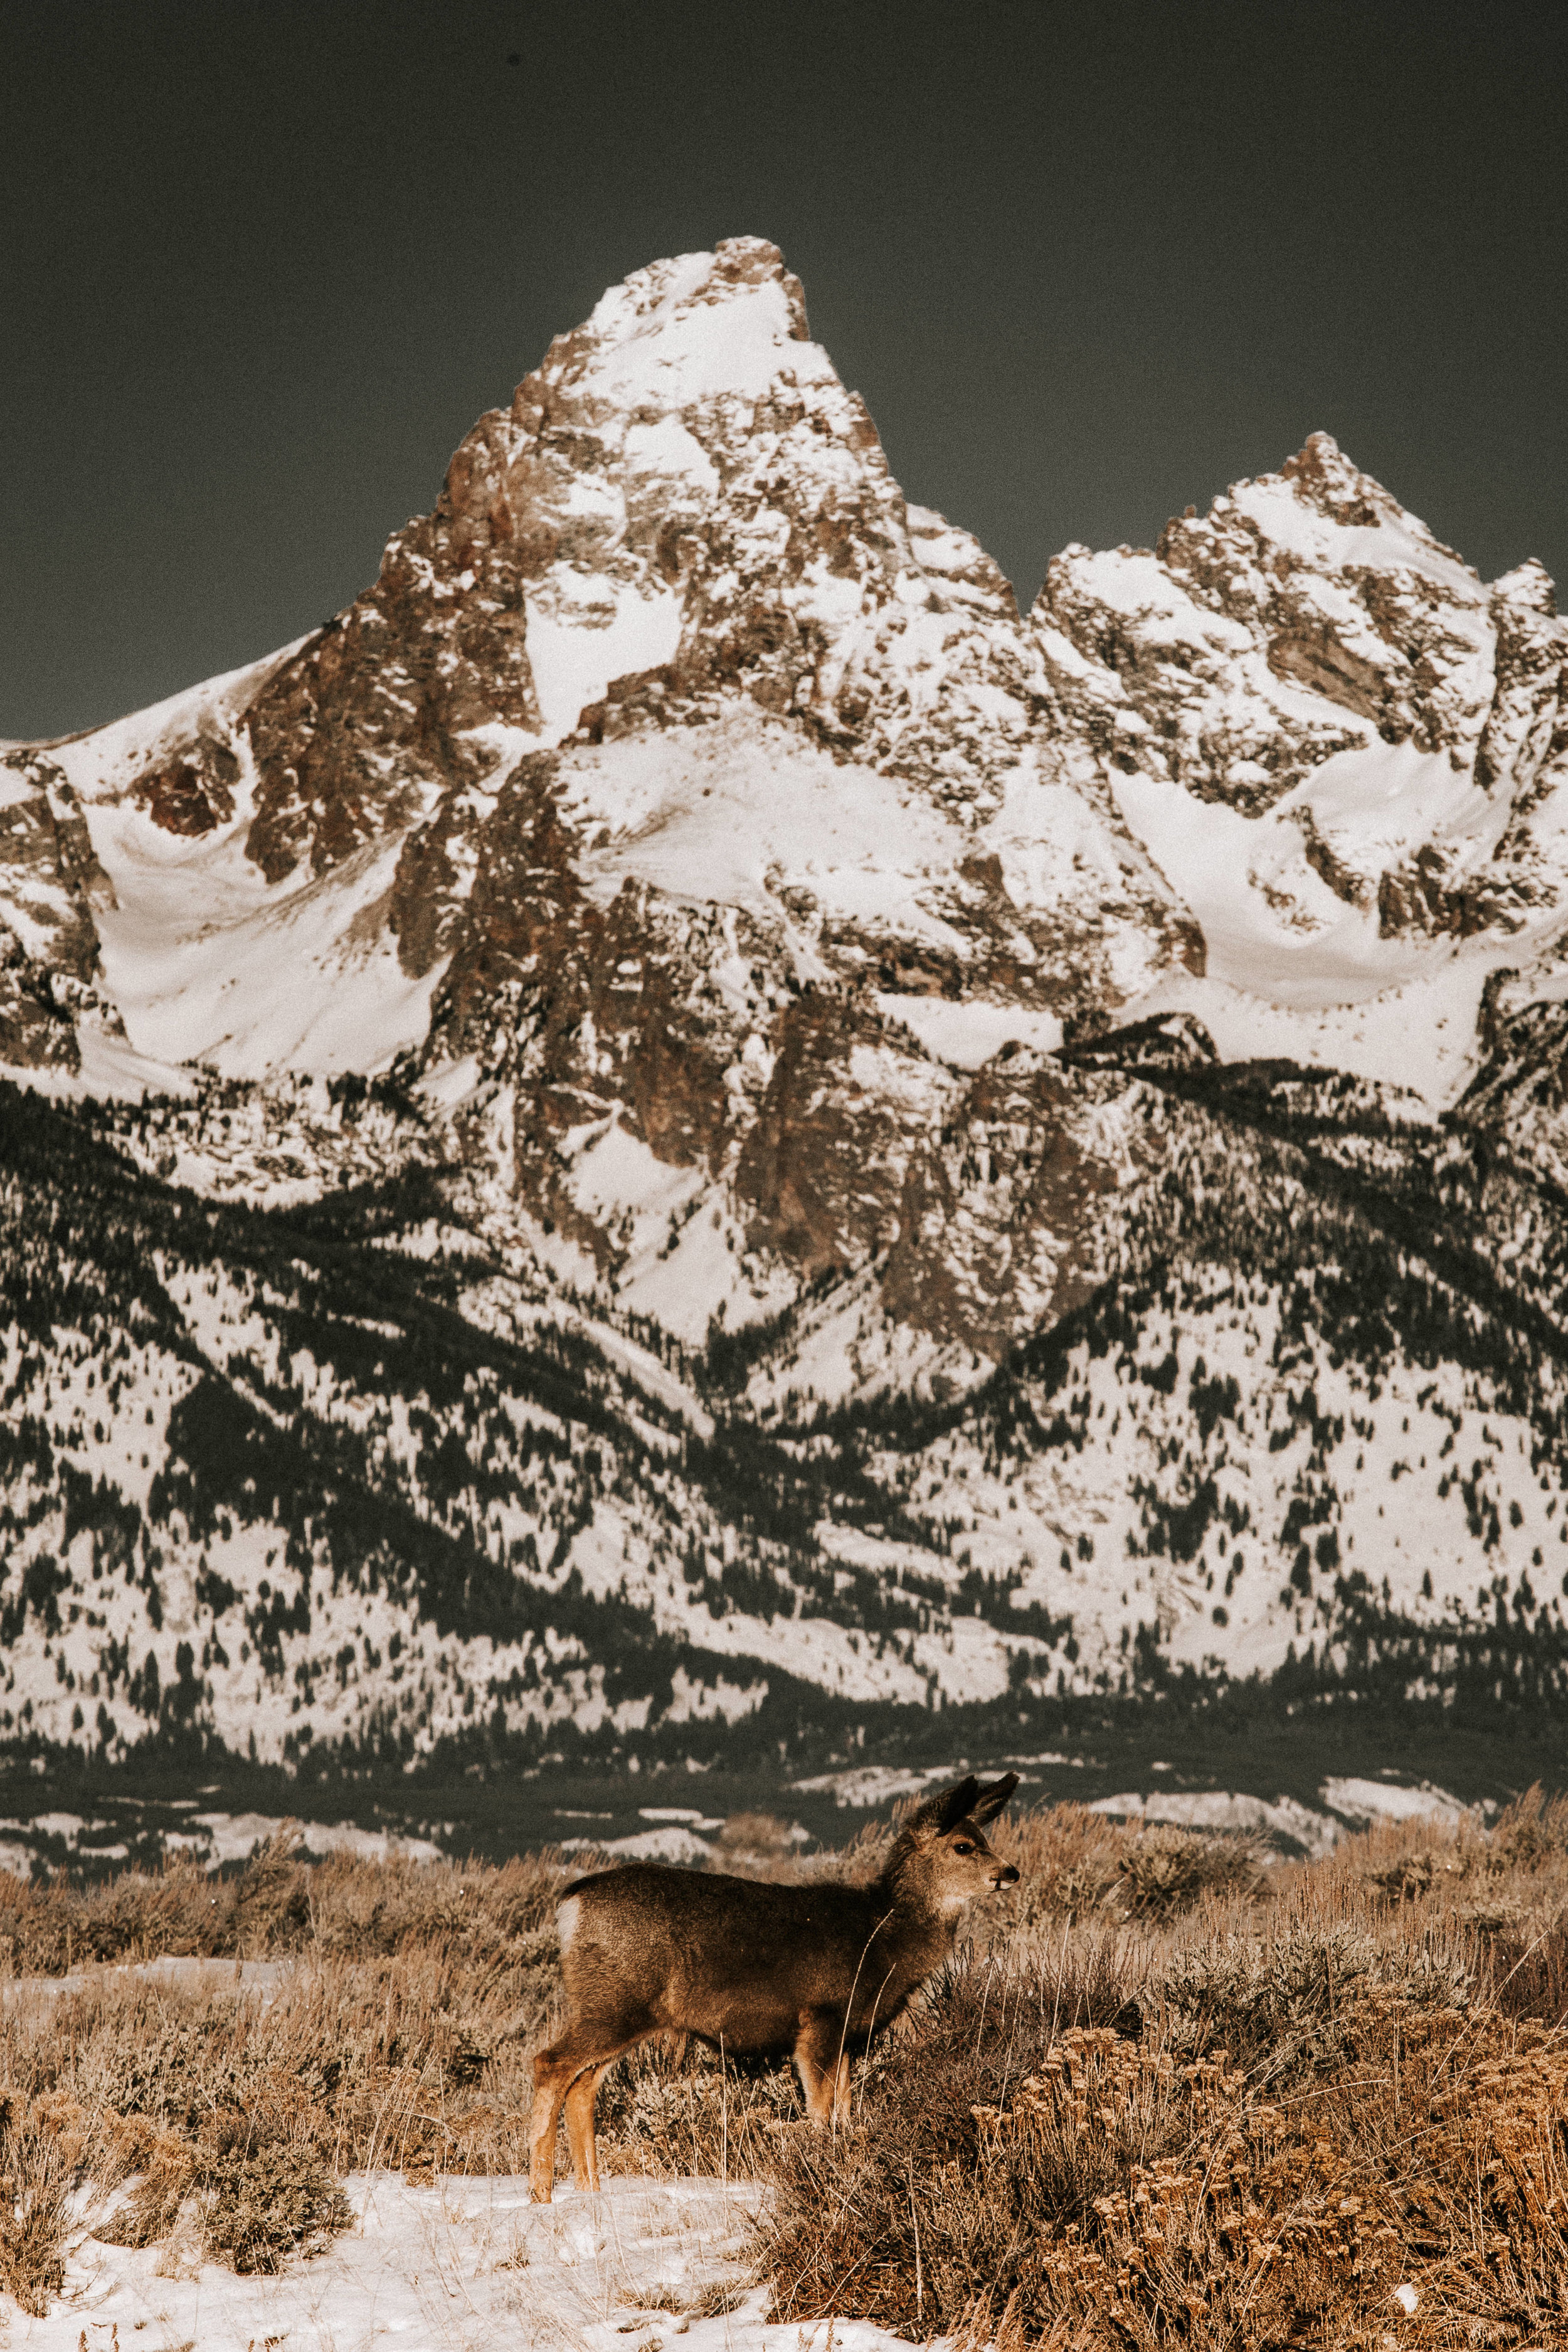 nicole-daacke-photography-jackson-hole-grand-teton-national-park-elopement-wedding-photographer-adventurous-engagement-session-grand-tetons-snow-visit-itinerary-for-jackson-hole-wyoming-9720.jpg